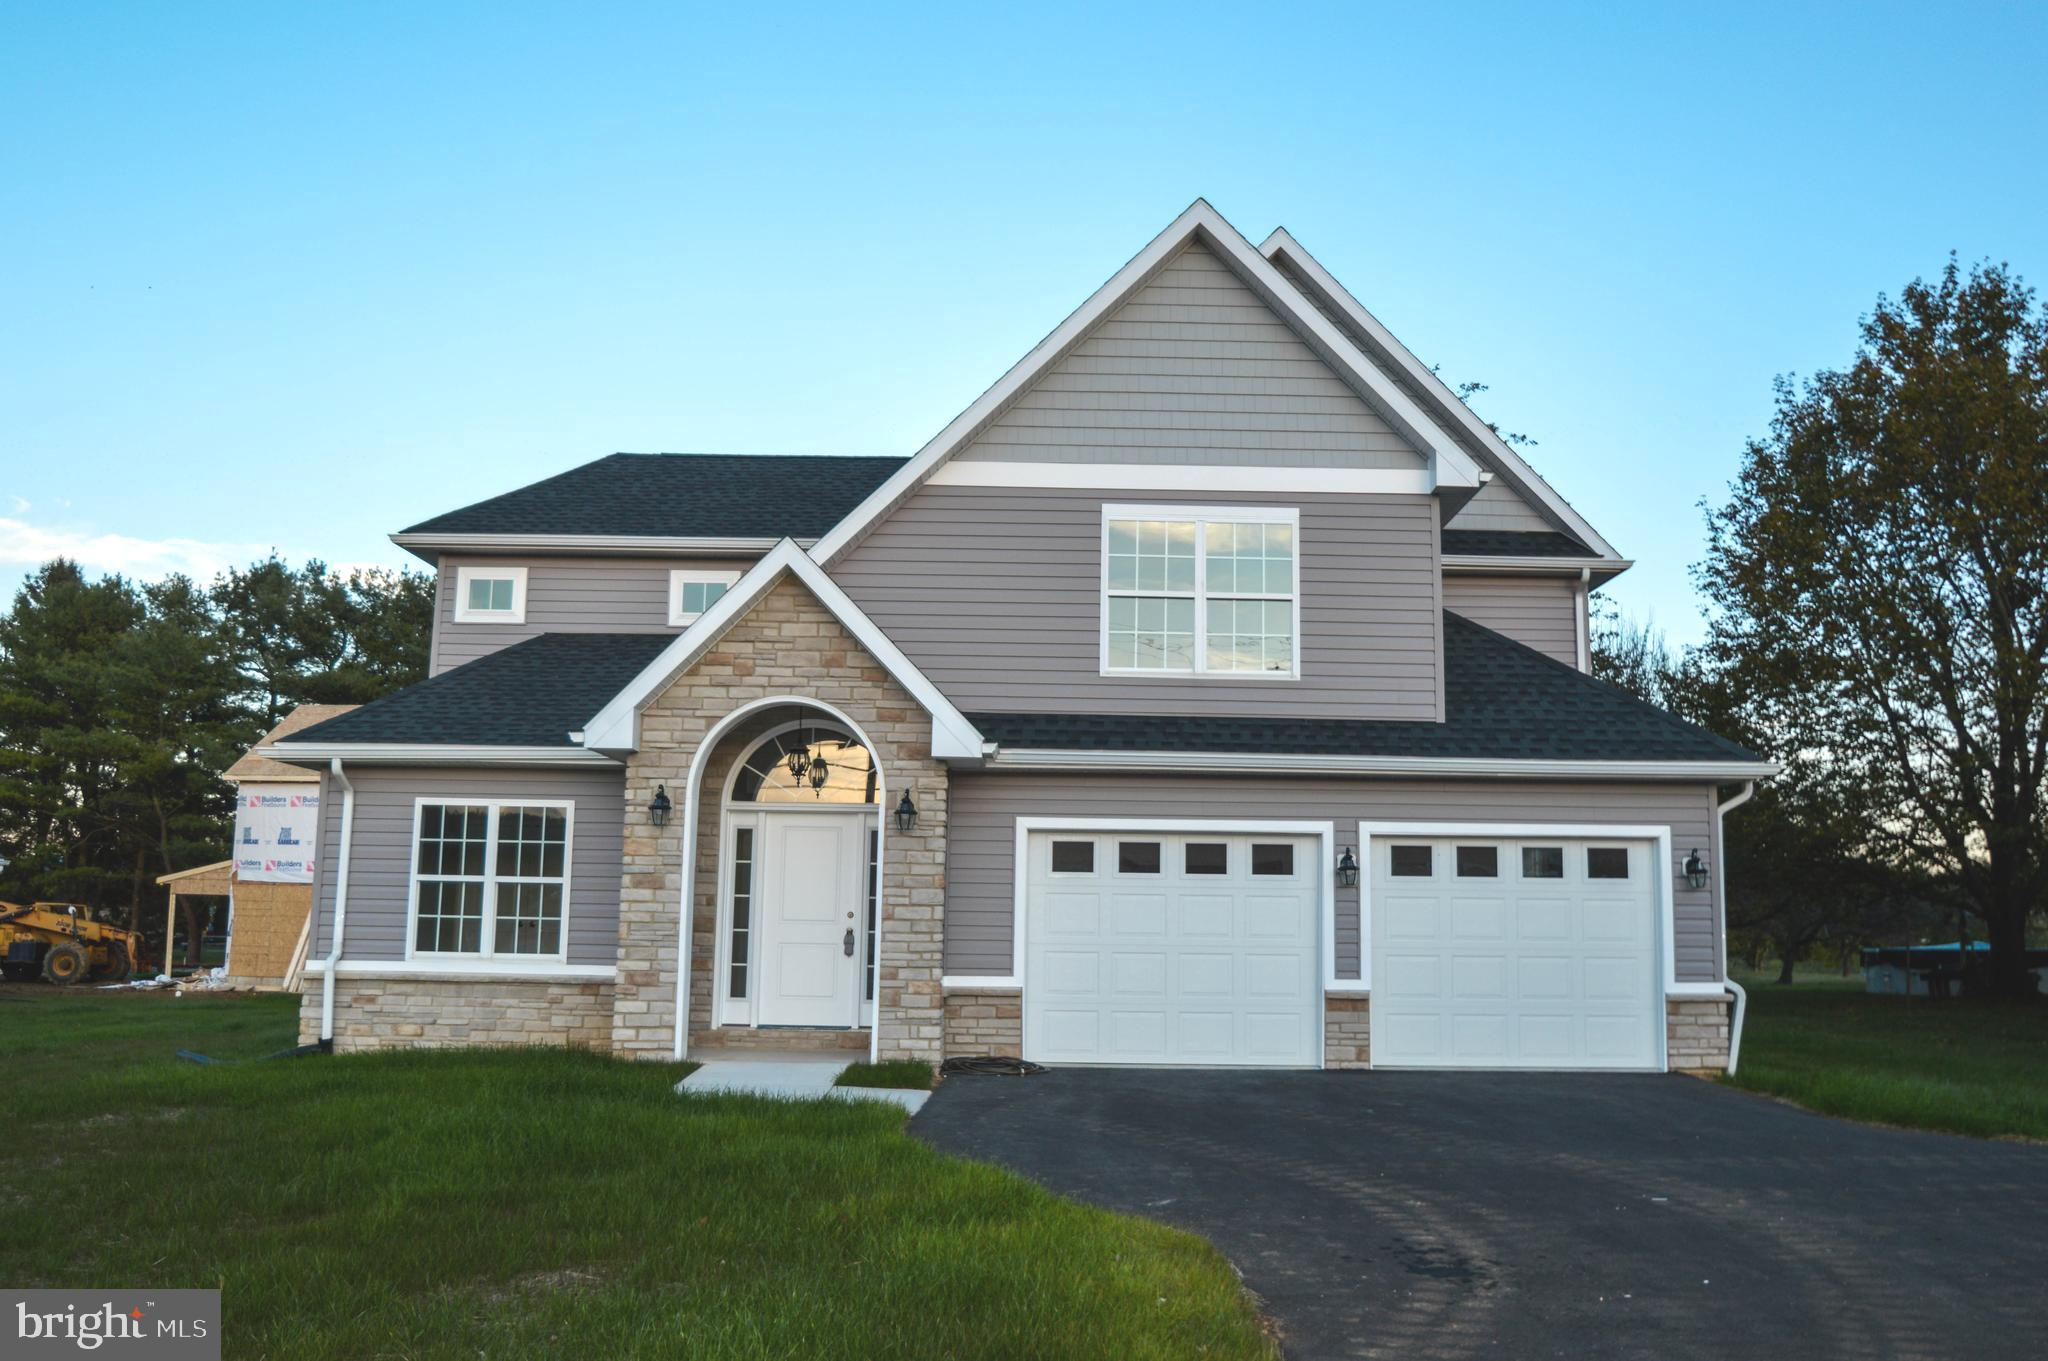 13046 MONTEREY LANE, BLUE RIDGE SUMMIT, PA 17214